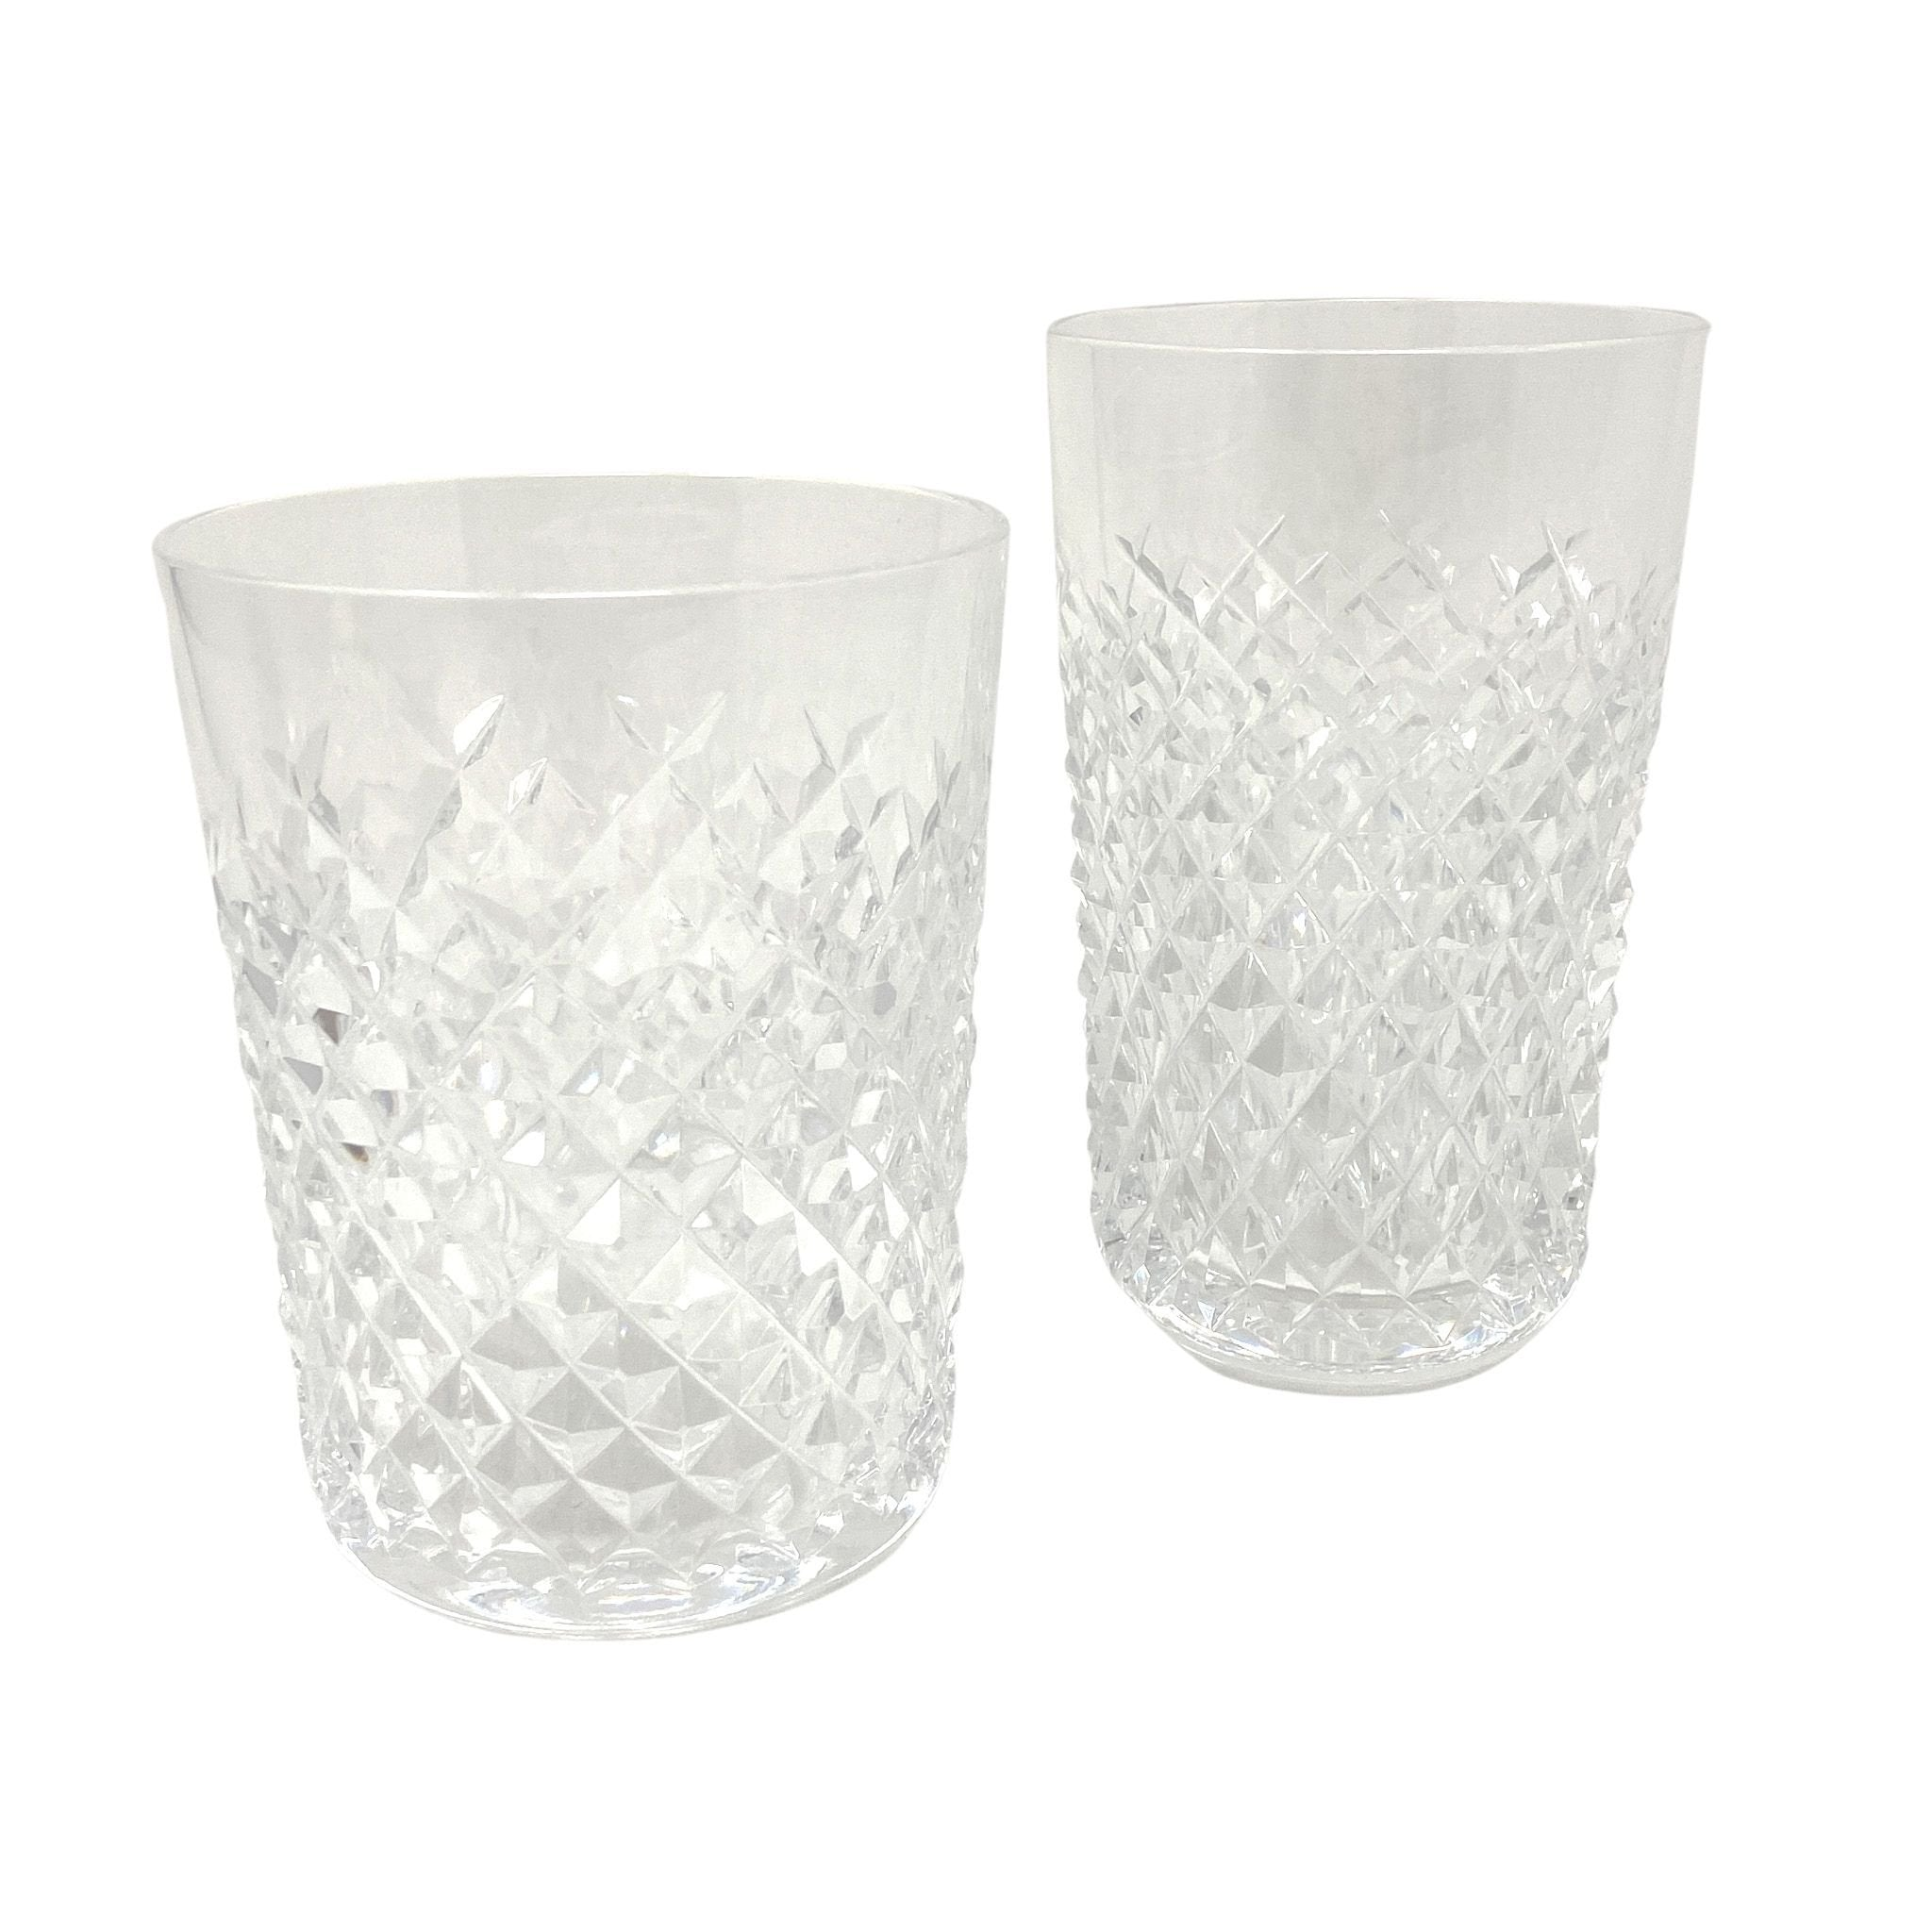 Vintage Waterford Faceted Crystal Tumblers available in two sizes | The Brooklyn Teacup